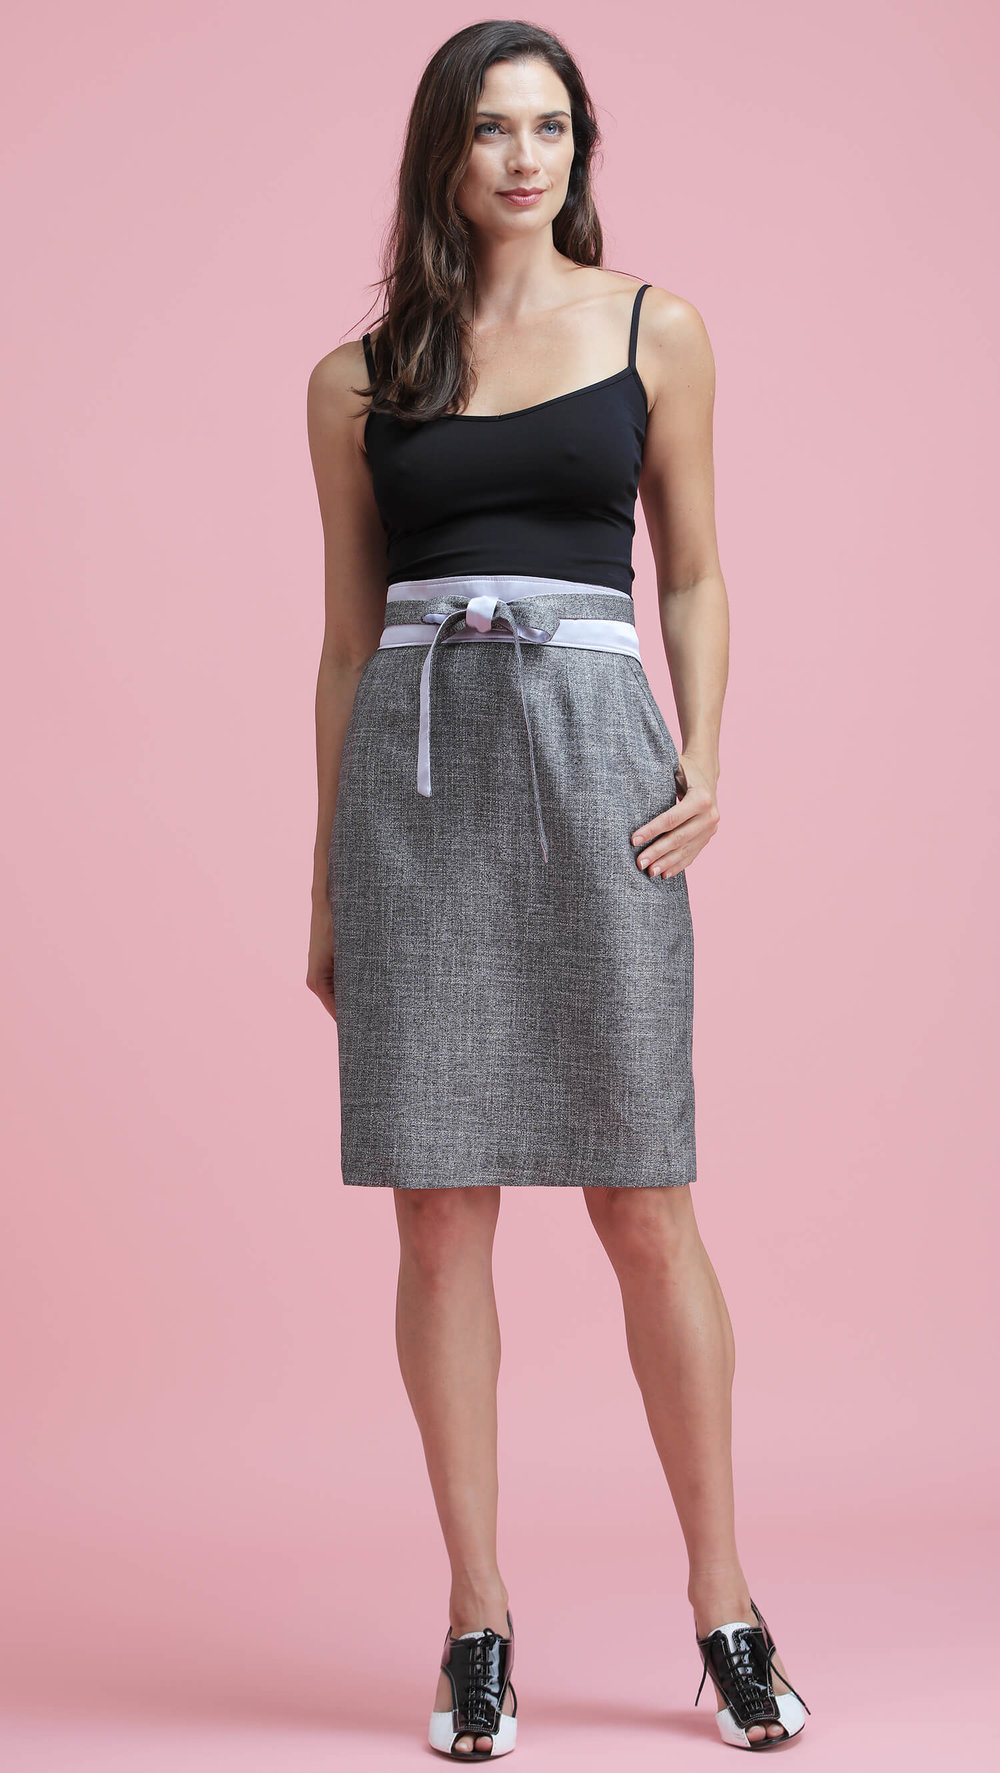 The Silver Bamboo Skirt